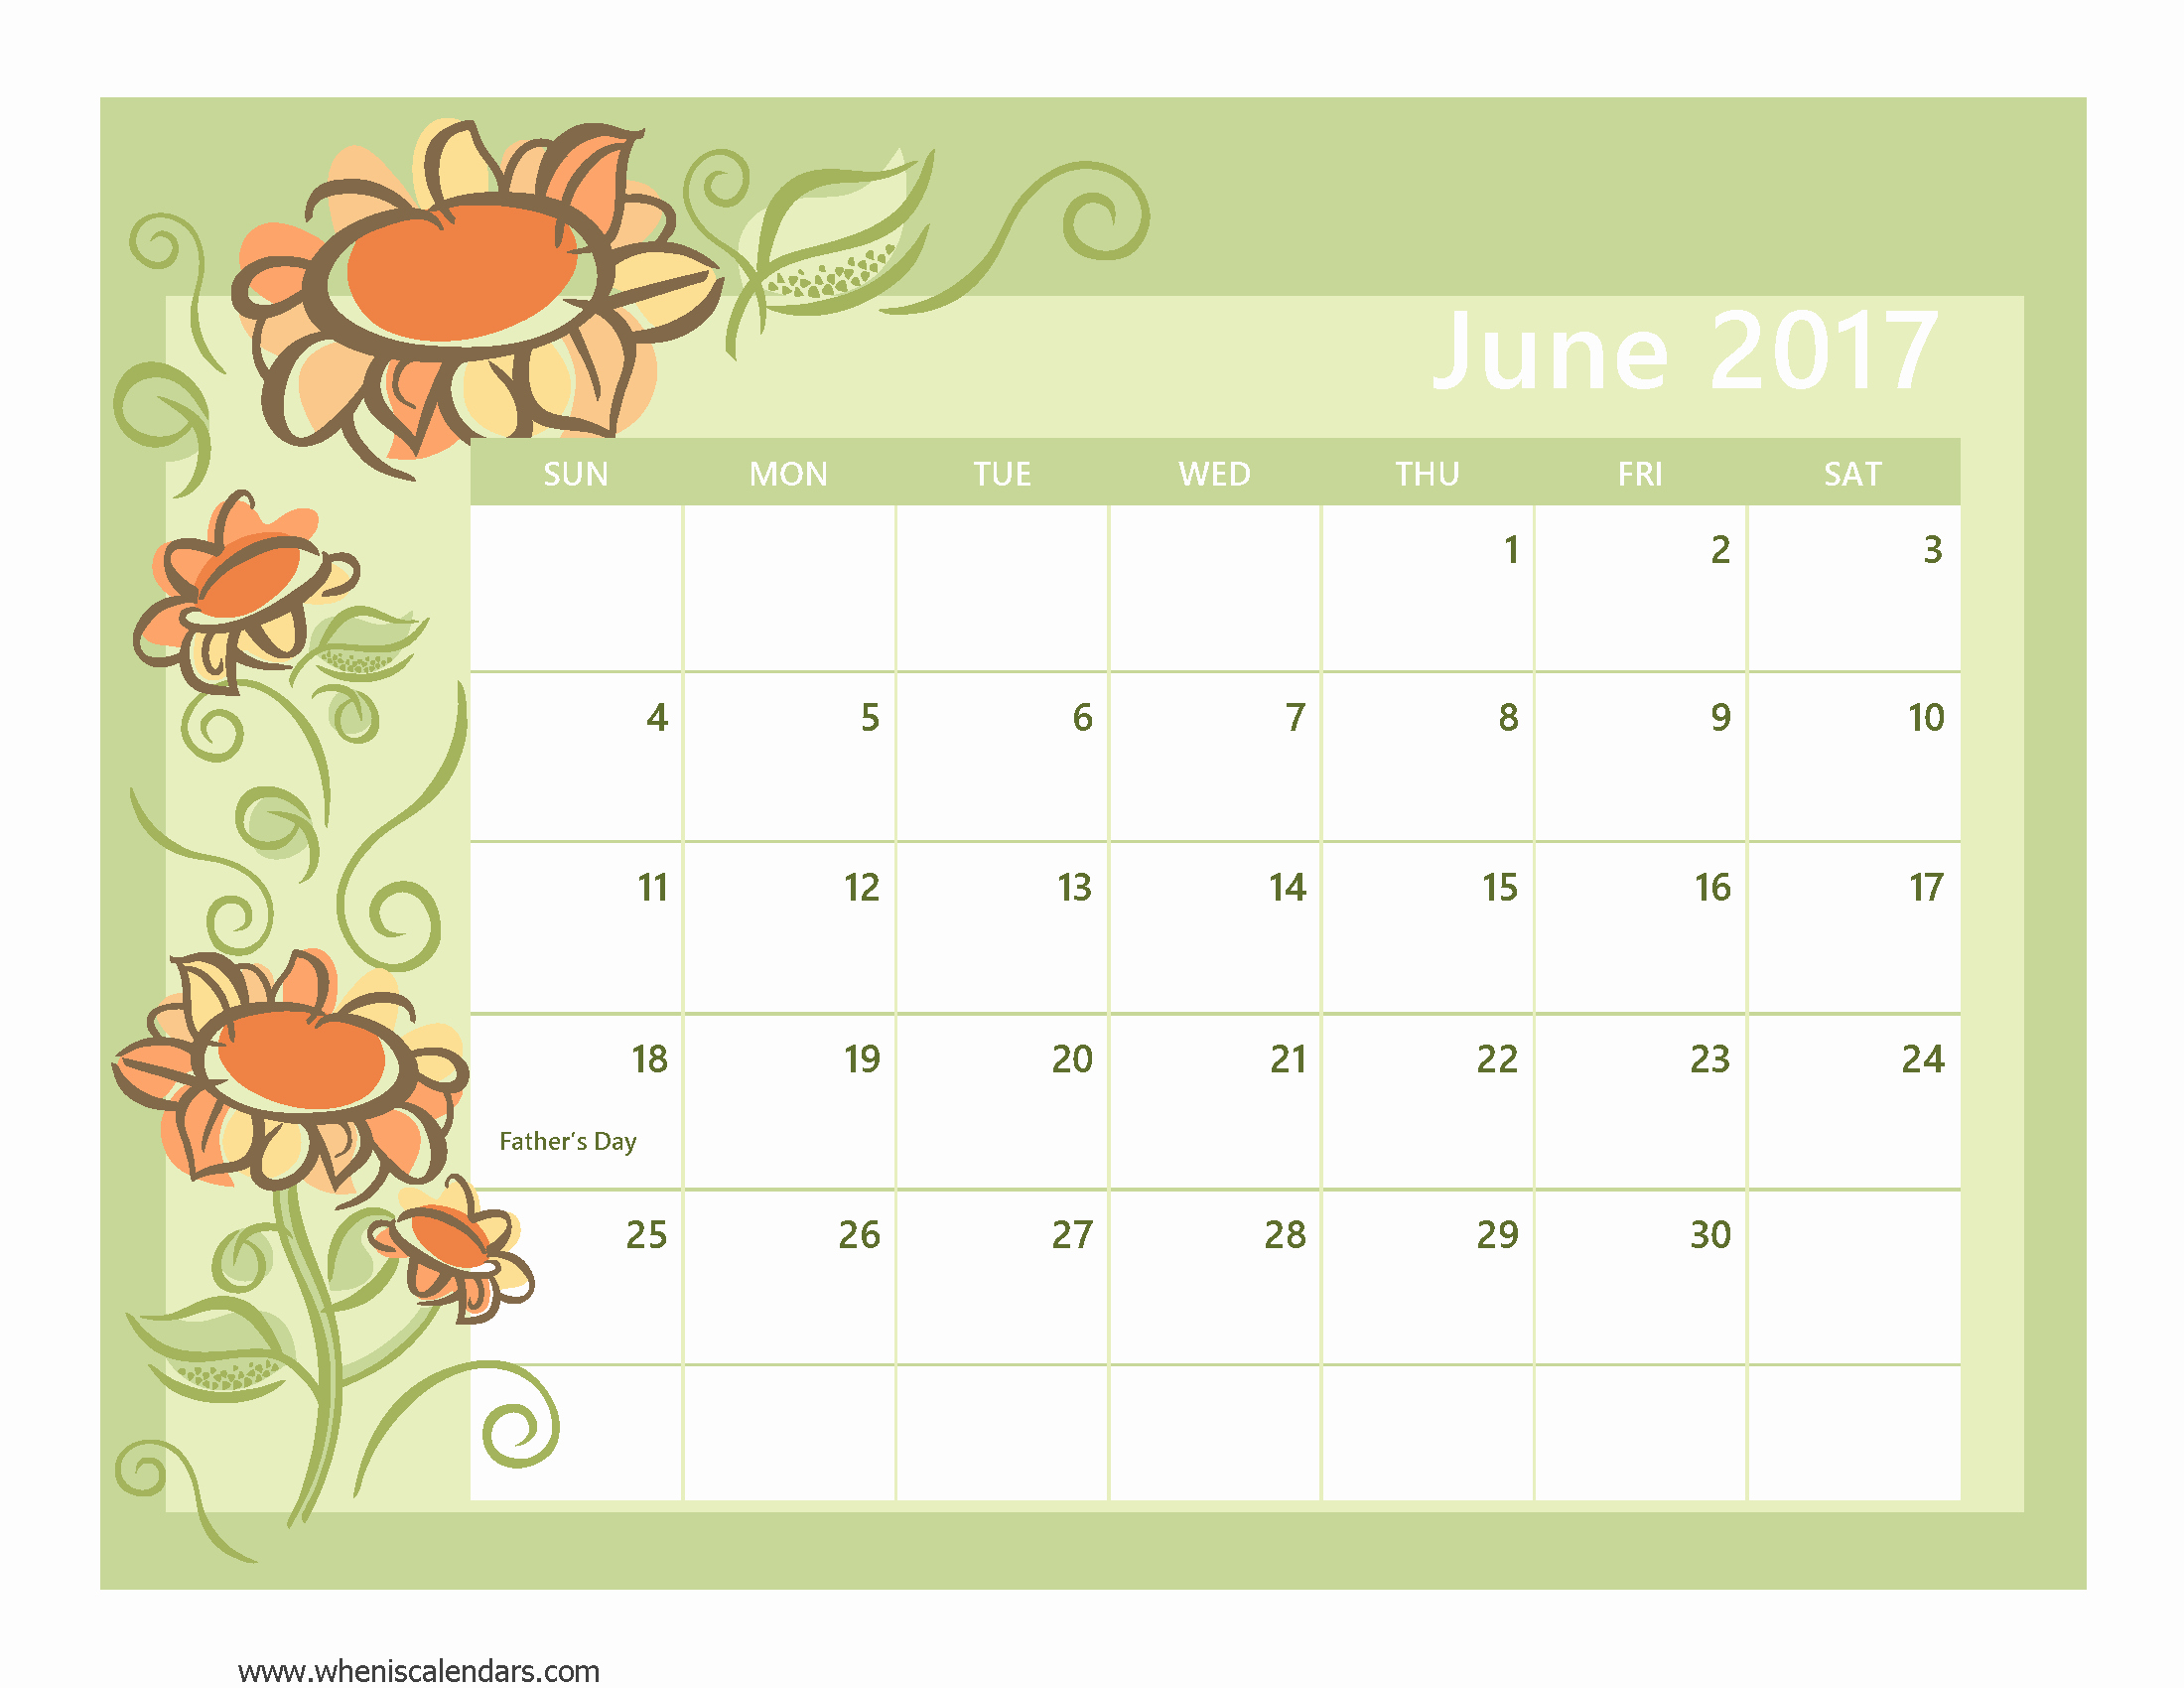 2017 Calendar with Holidays Template Elegant June 2017 Calendar with Holidays